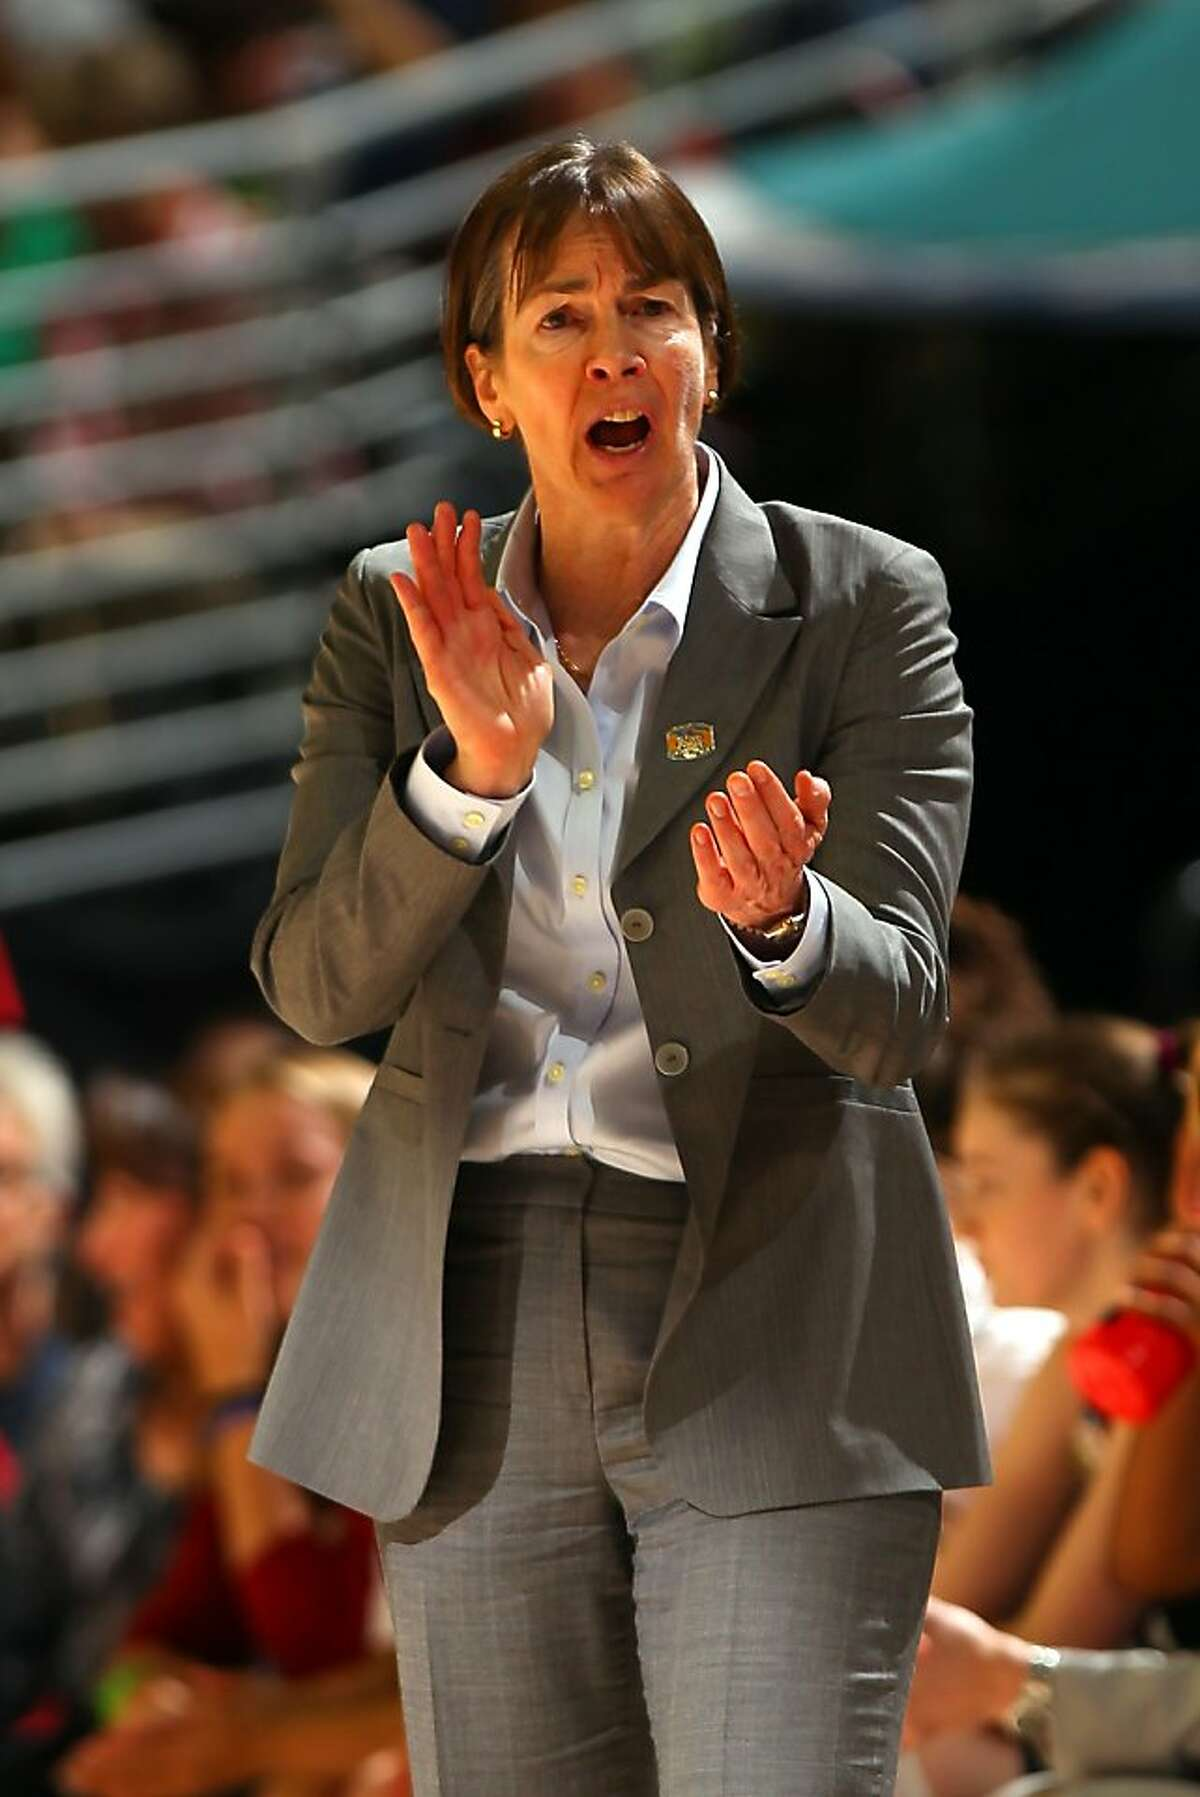 DENVER, CO - APRIL 01: Head coach Tara VanDerveer of the Stanford Cardinal reacts as she coaches in the first half against the Baylor Bears during the National Semifinal game of the 2012 NCAA Division I Women's Basketball Championship at Pepsi Center on April 1, 2012 in Denver, Colorado. (Photo by Doug Pensinger/Getty Images)